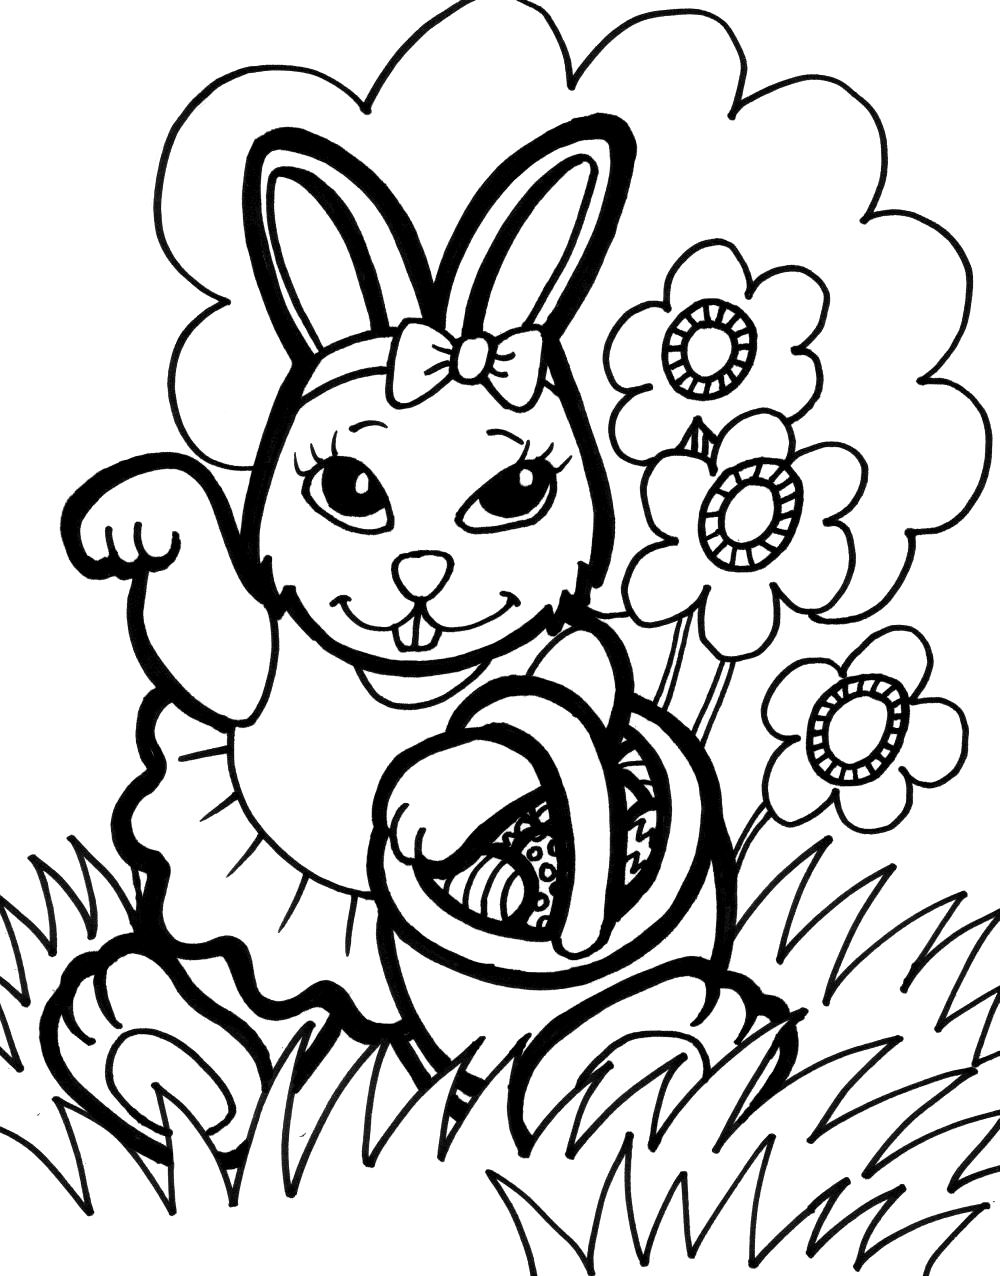 coloring kids picture anime coloring pages best coloring pages for kids picture kids coloring